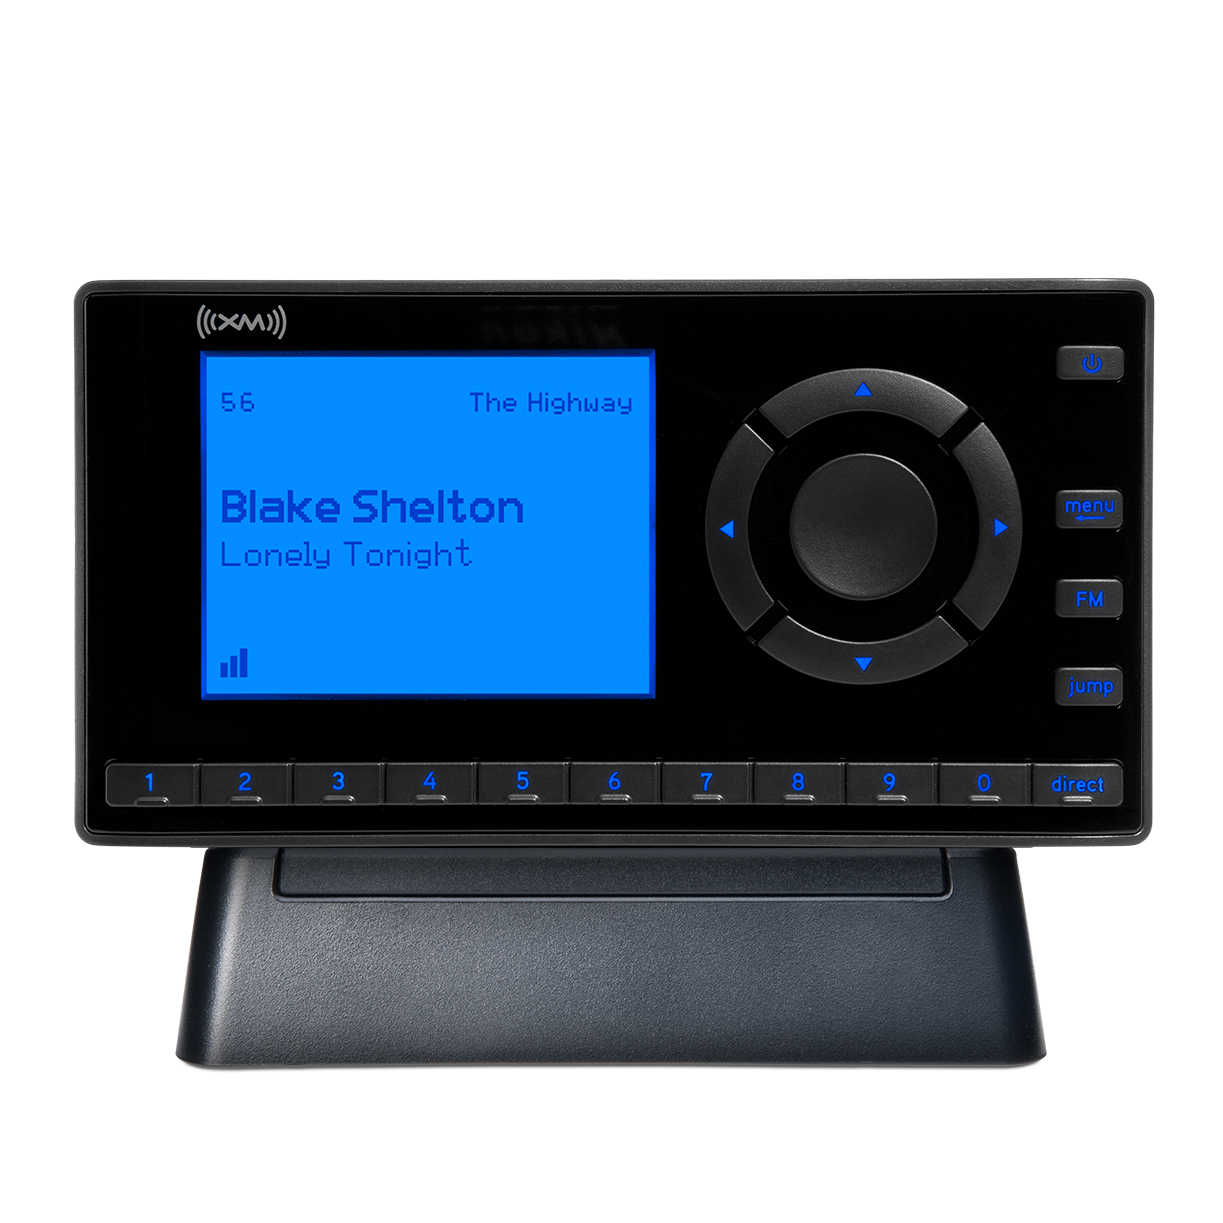 user guides shop siriusxm rh shop siriusxm com Sirius Starmate Home Kit 5 Sirius Starmate 4 Speaker Home